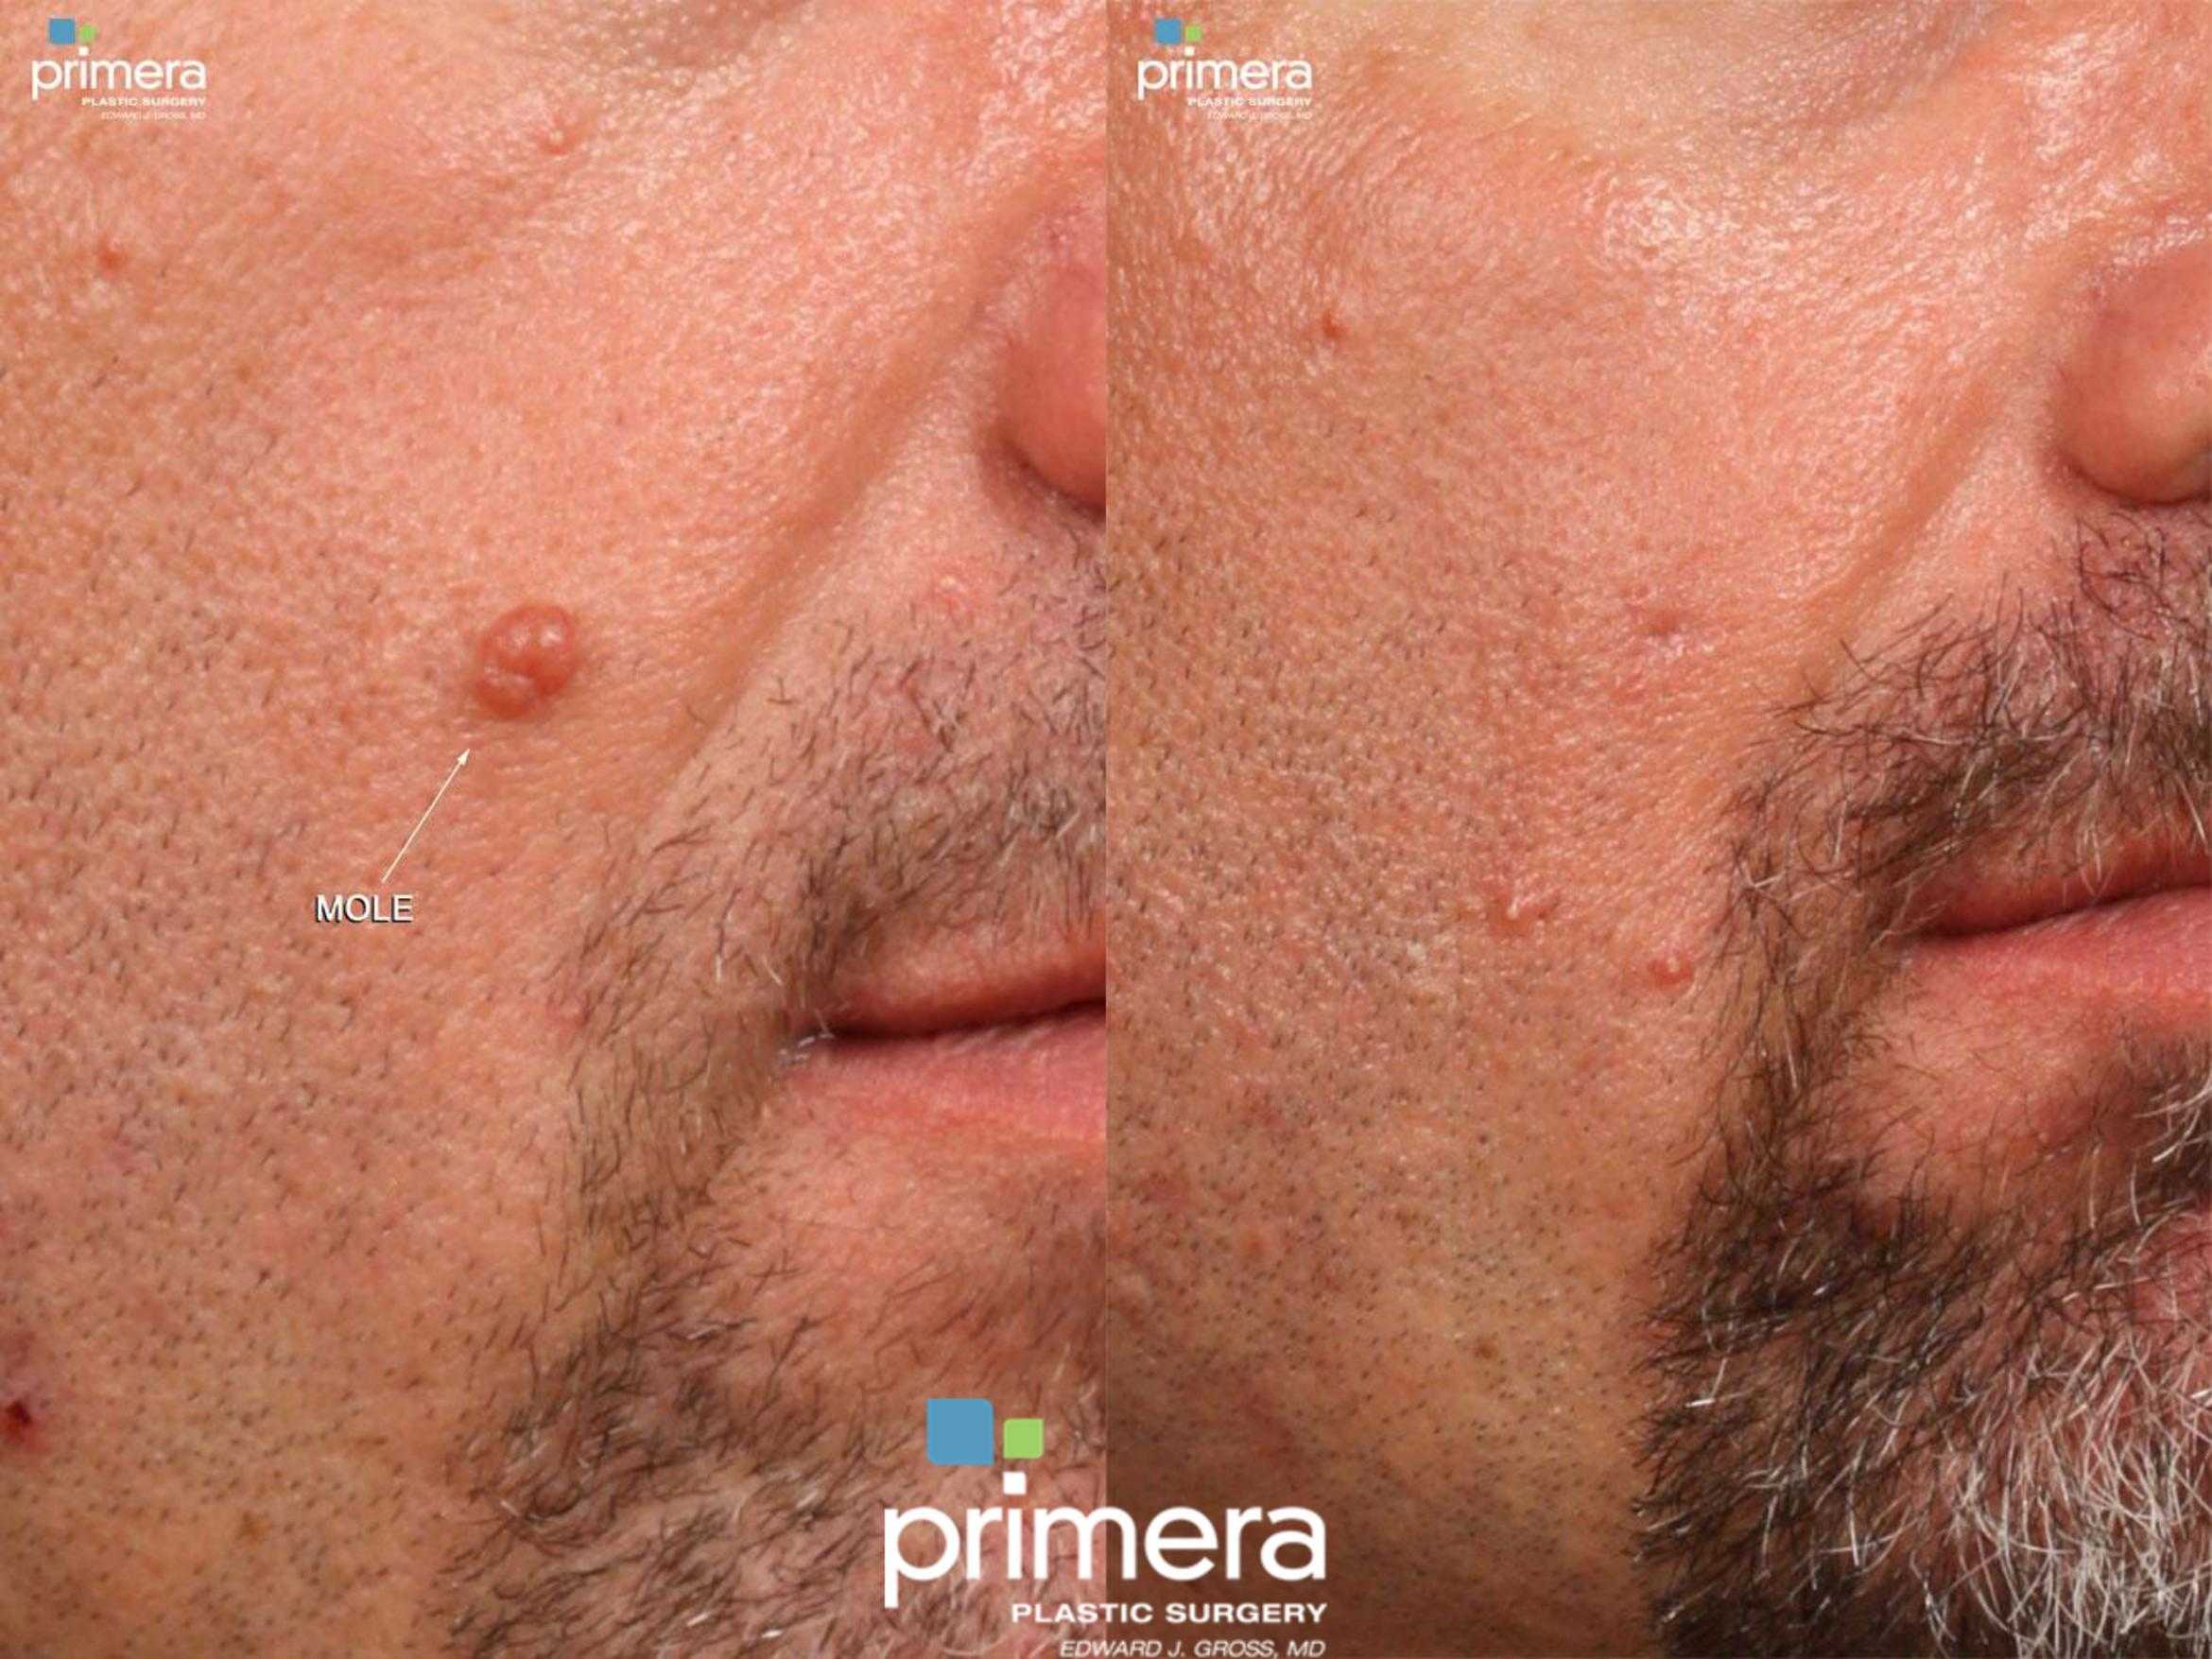 Cyst Removal Before & After Photo | Orlando, Florida | Primera Plastic Surgery